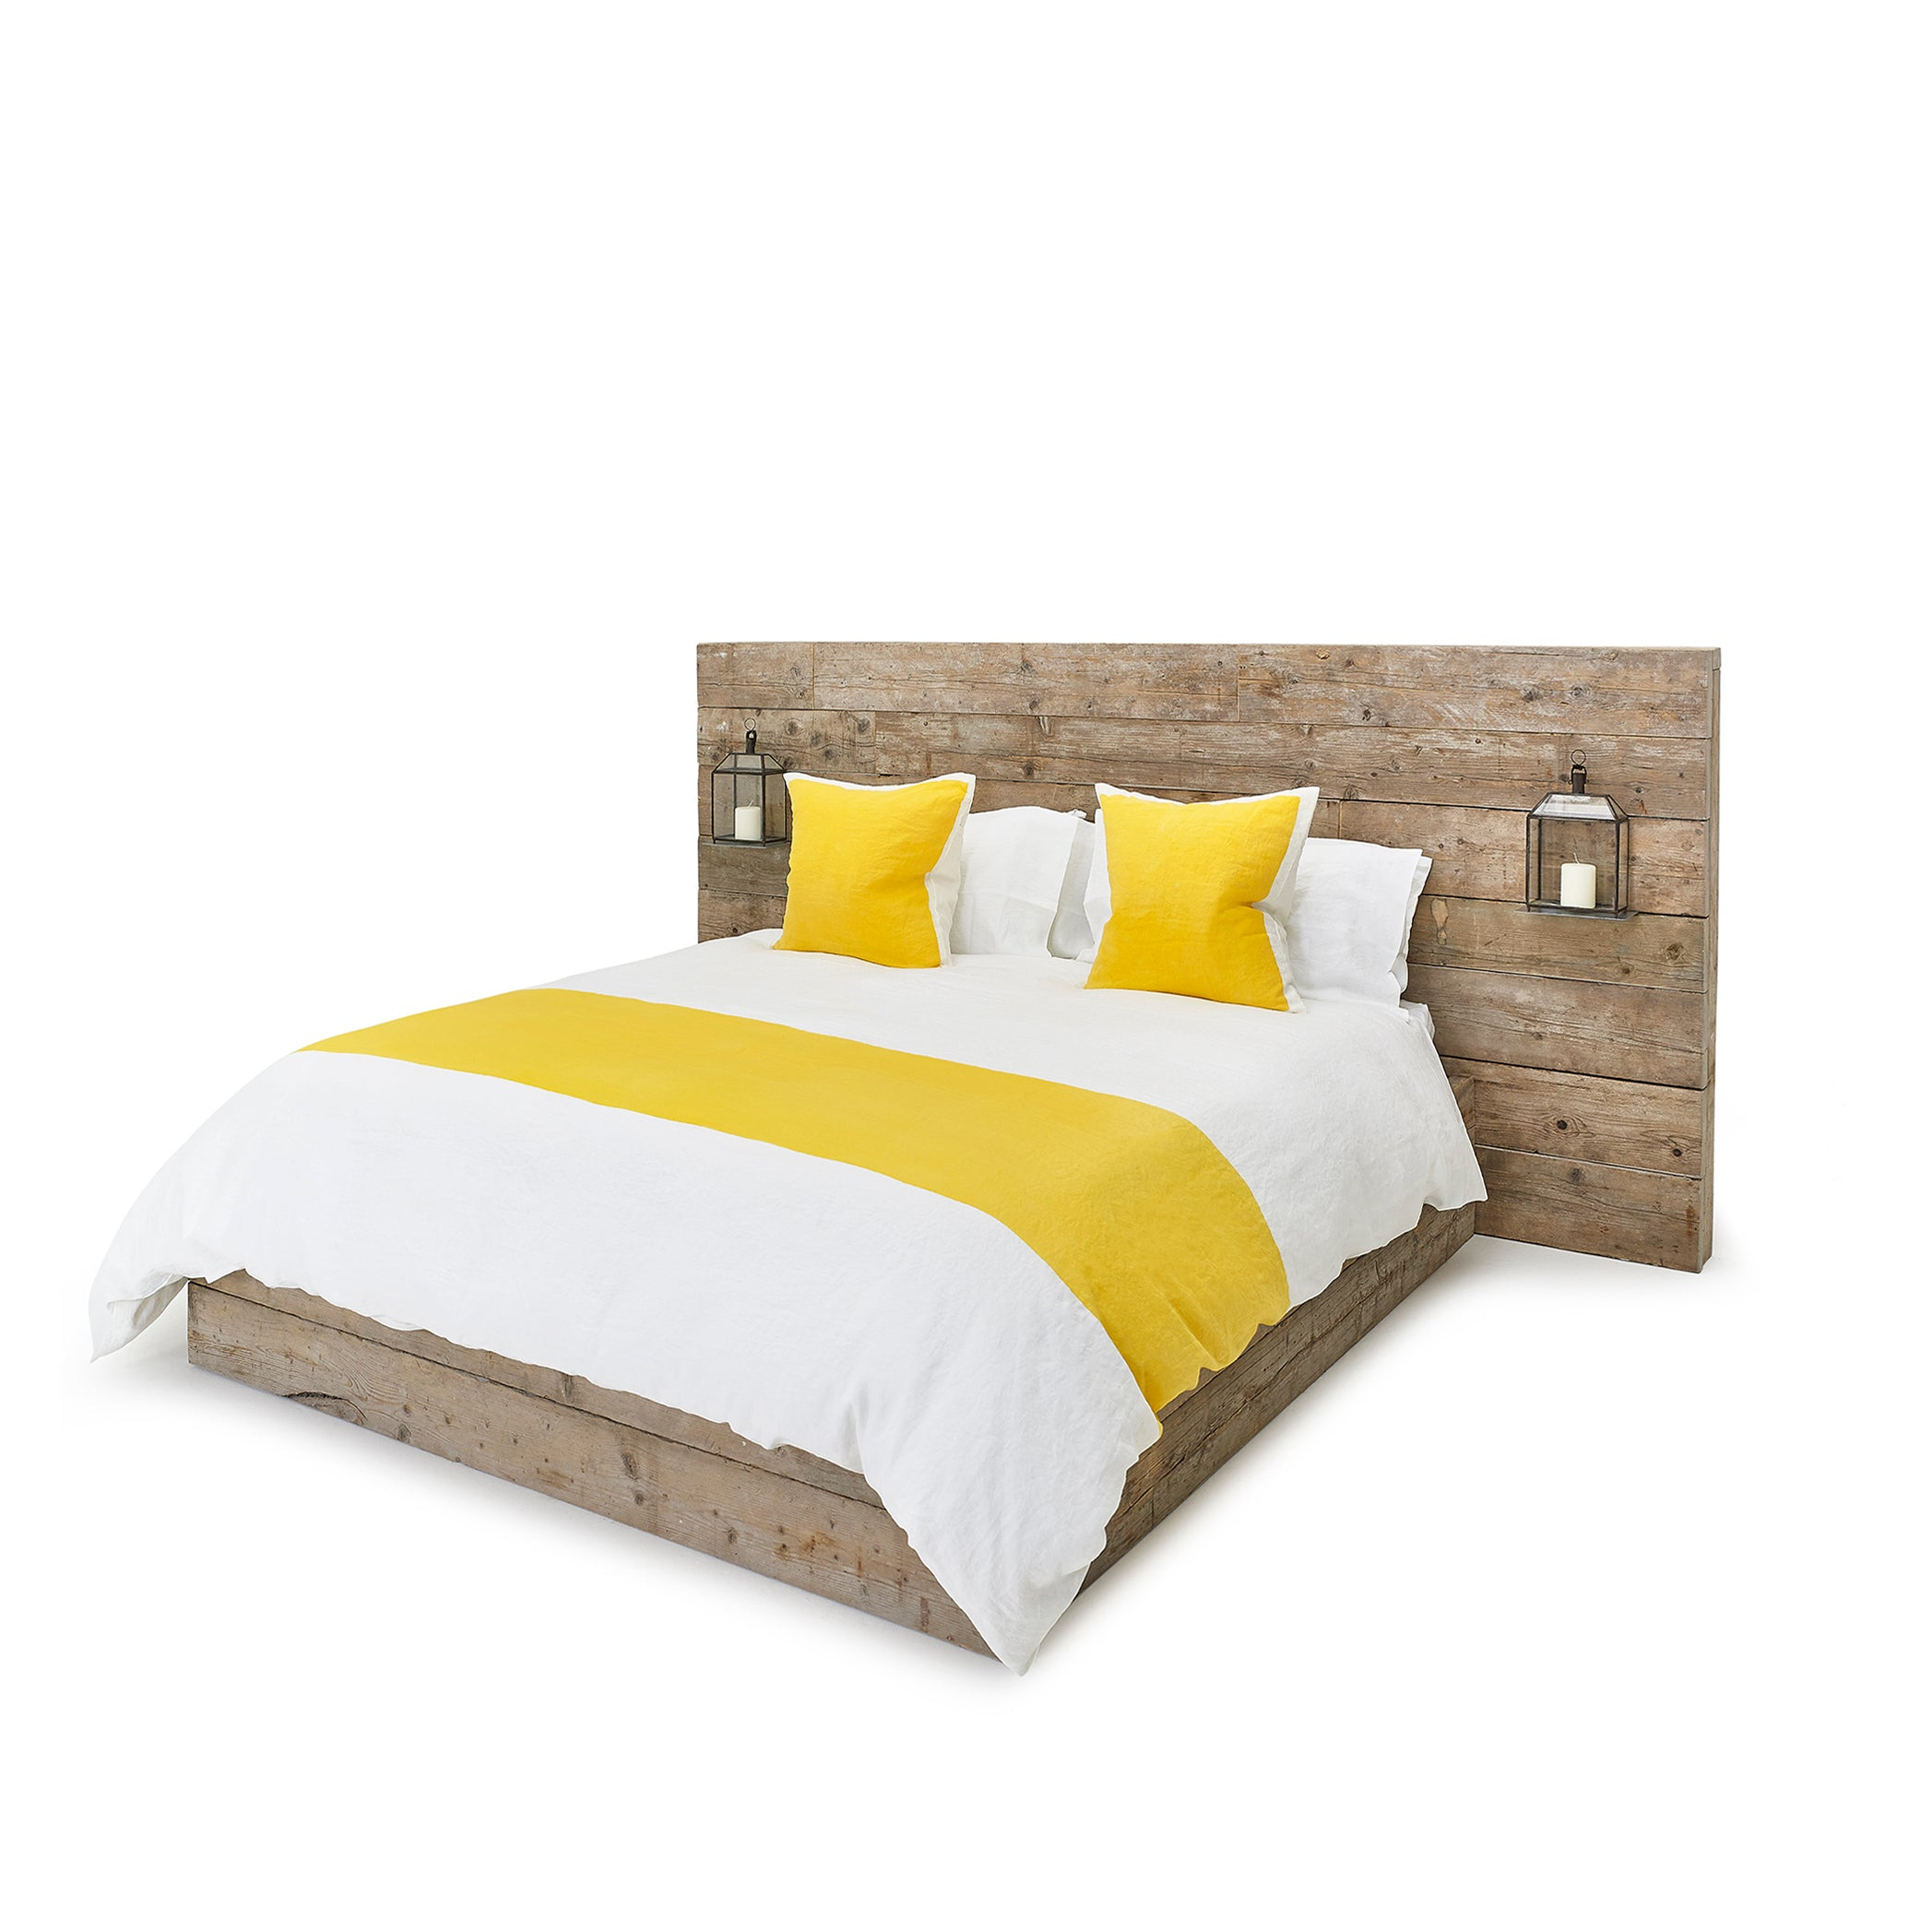 """S&B Classic"" Linen Bed Set in Lemon Yellow, Super King"